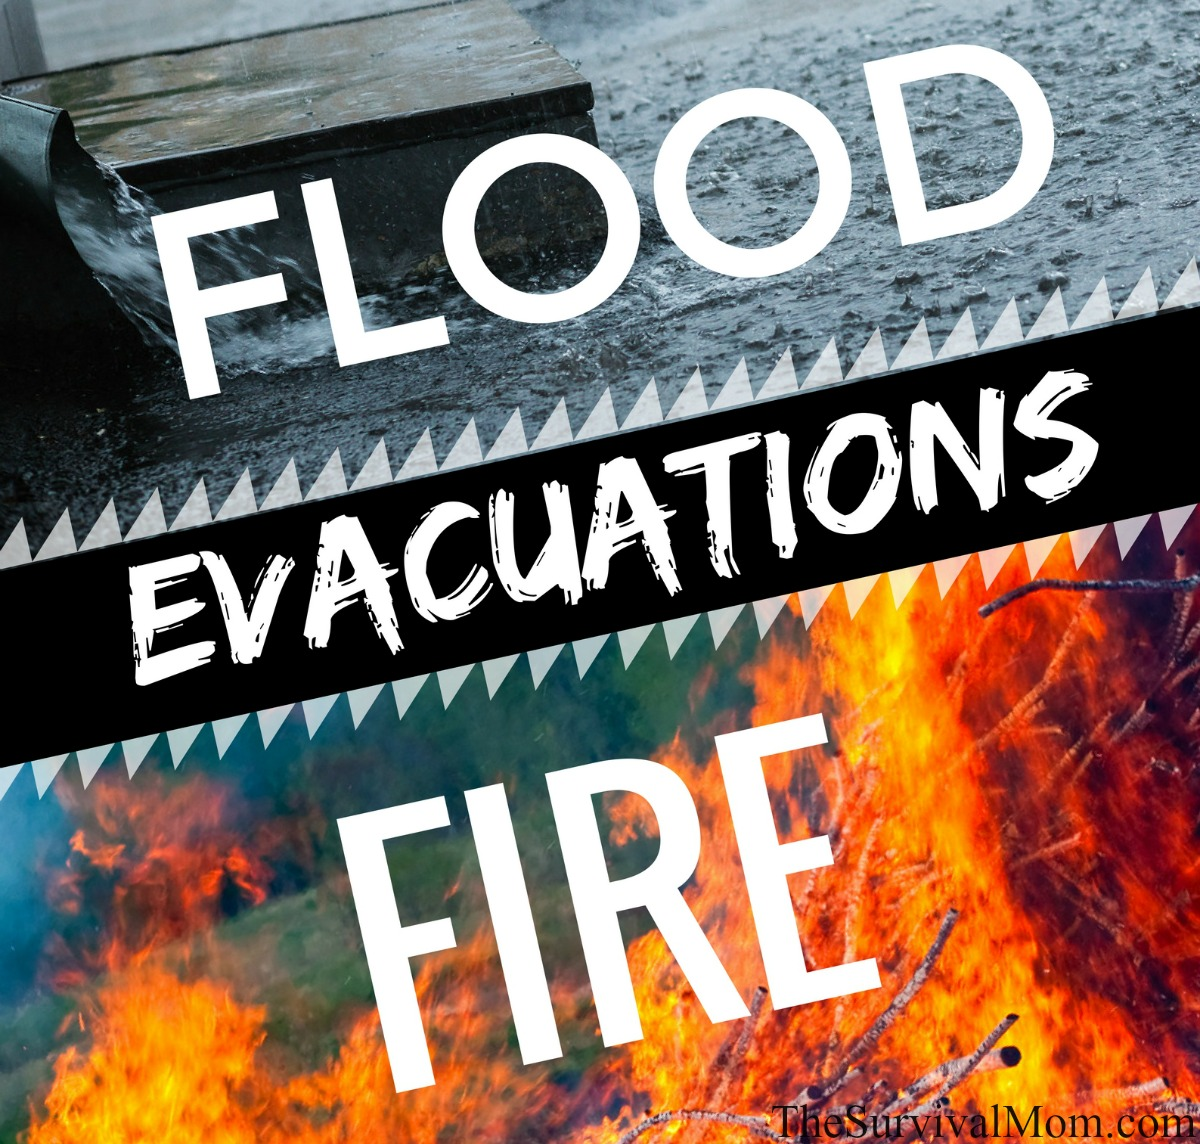 Flood Fire Evacuations via The Survival Mom